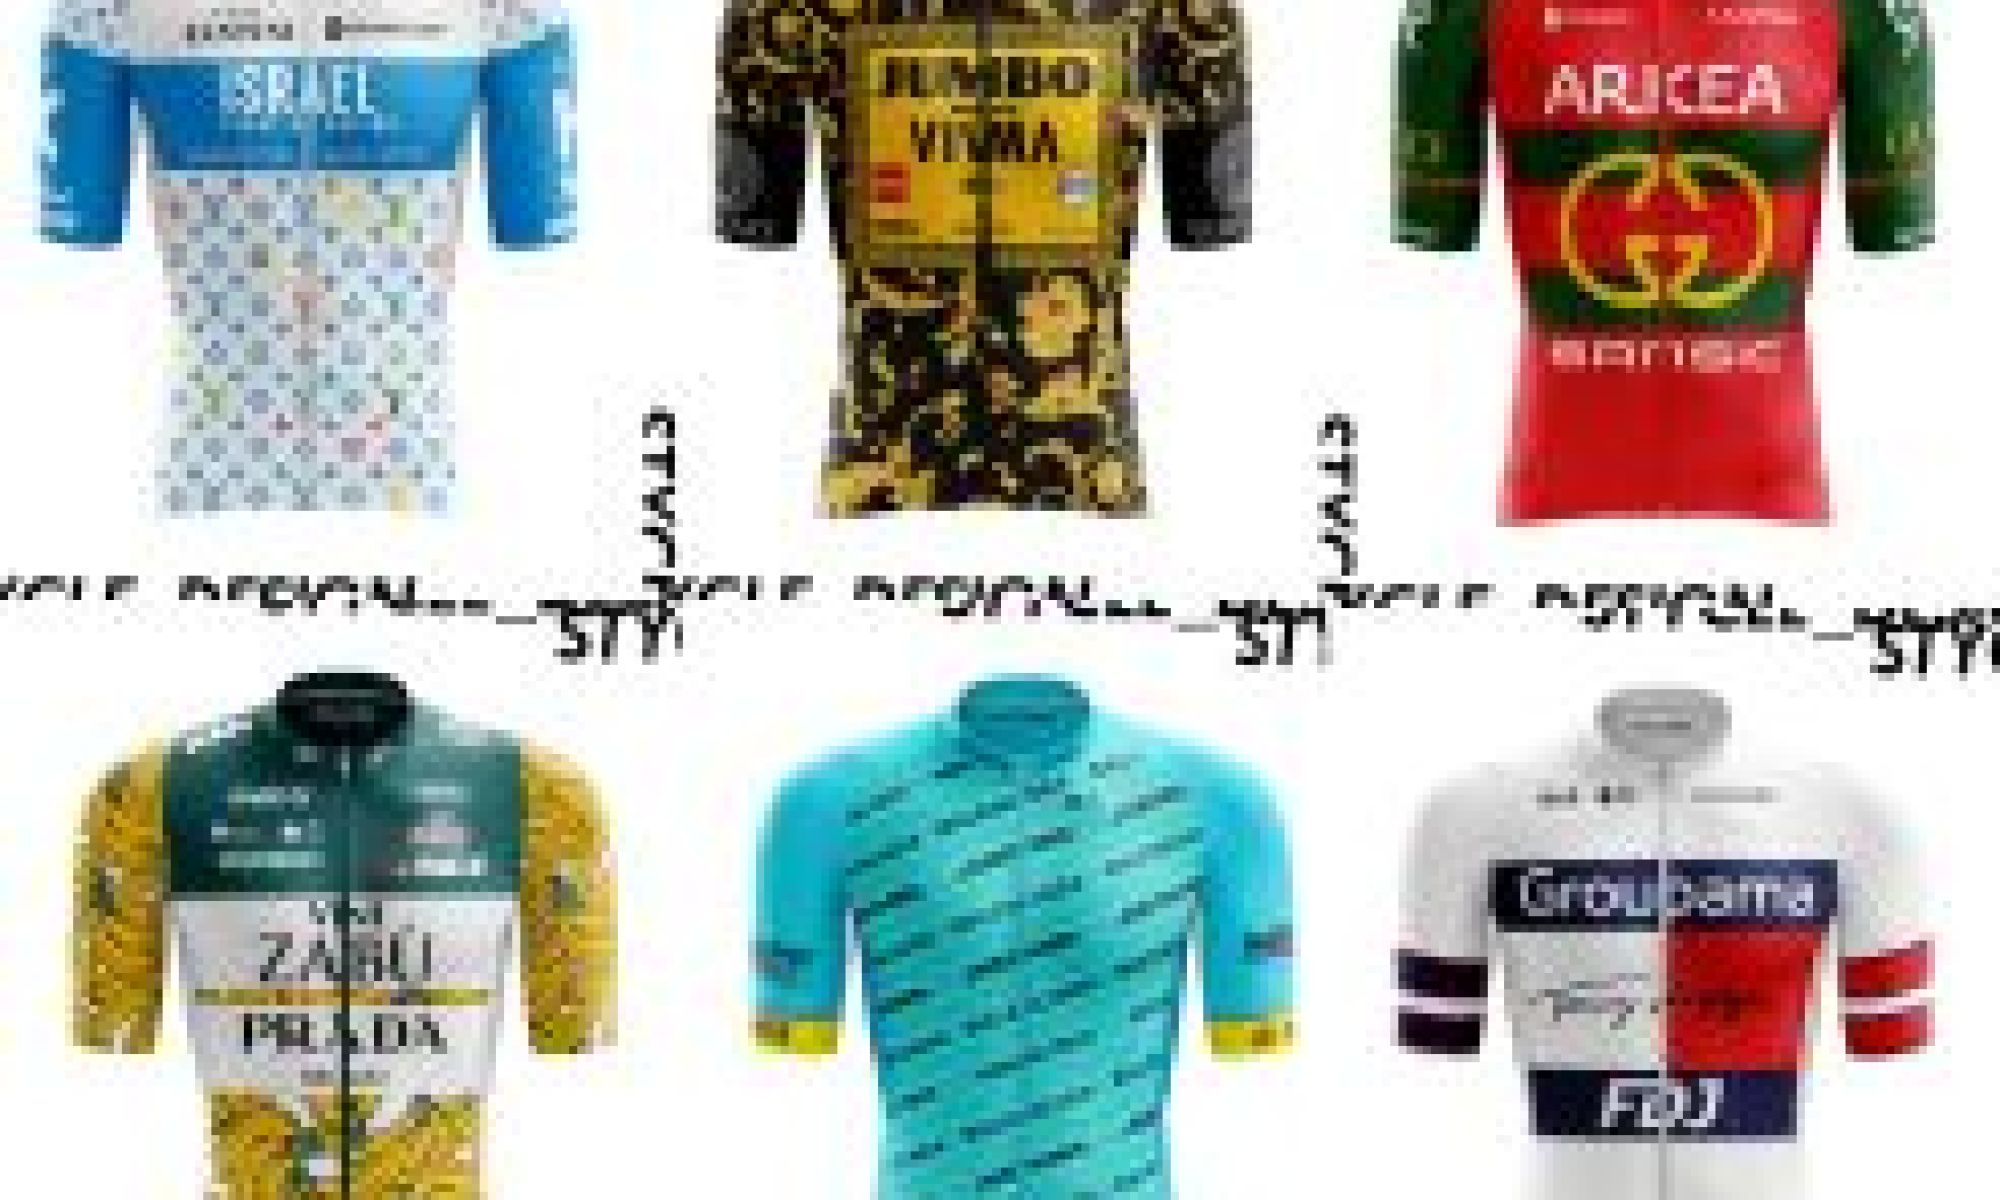 After the new EF kit, one fan decided to give the entire peloton a high-fashion redesign